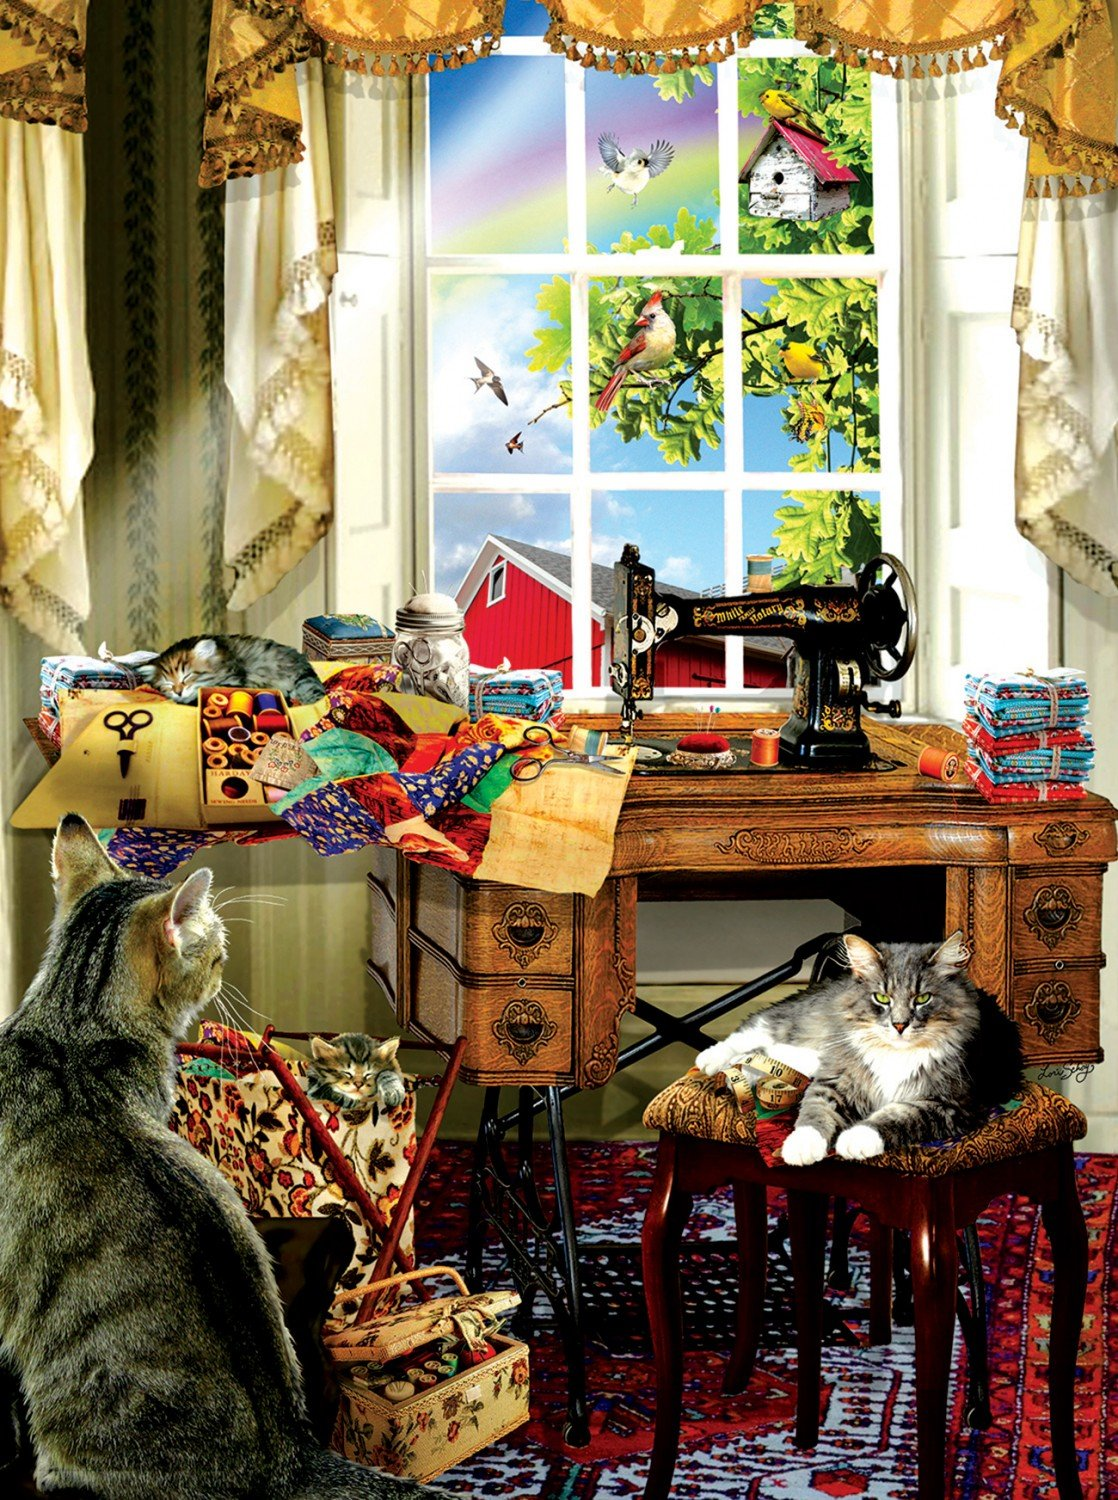 The Sewing Room Puzzle